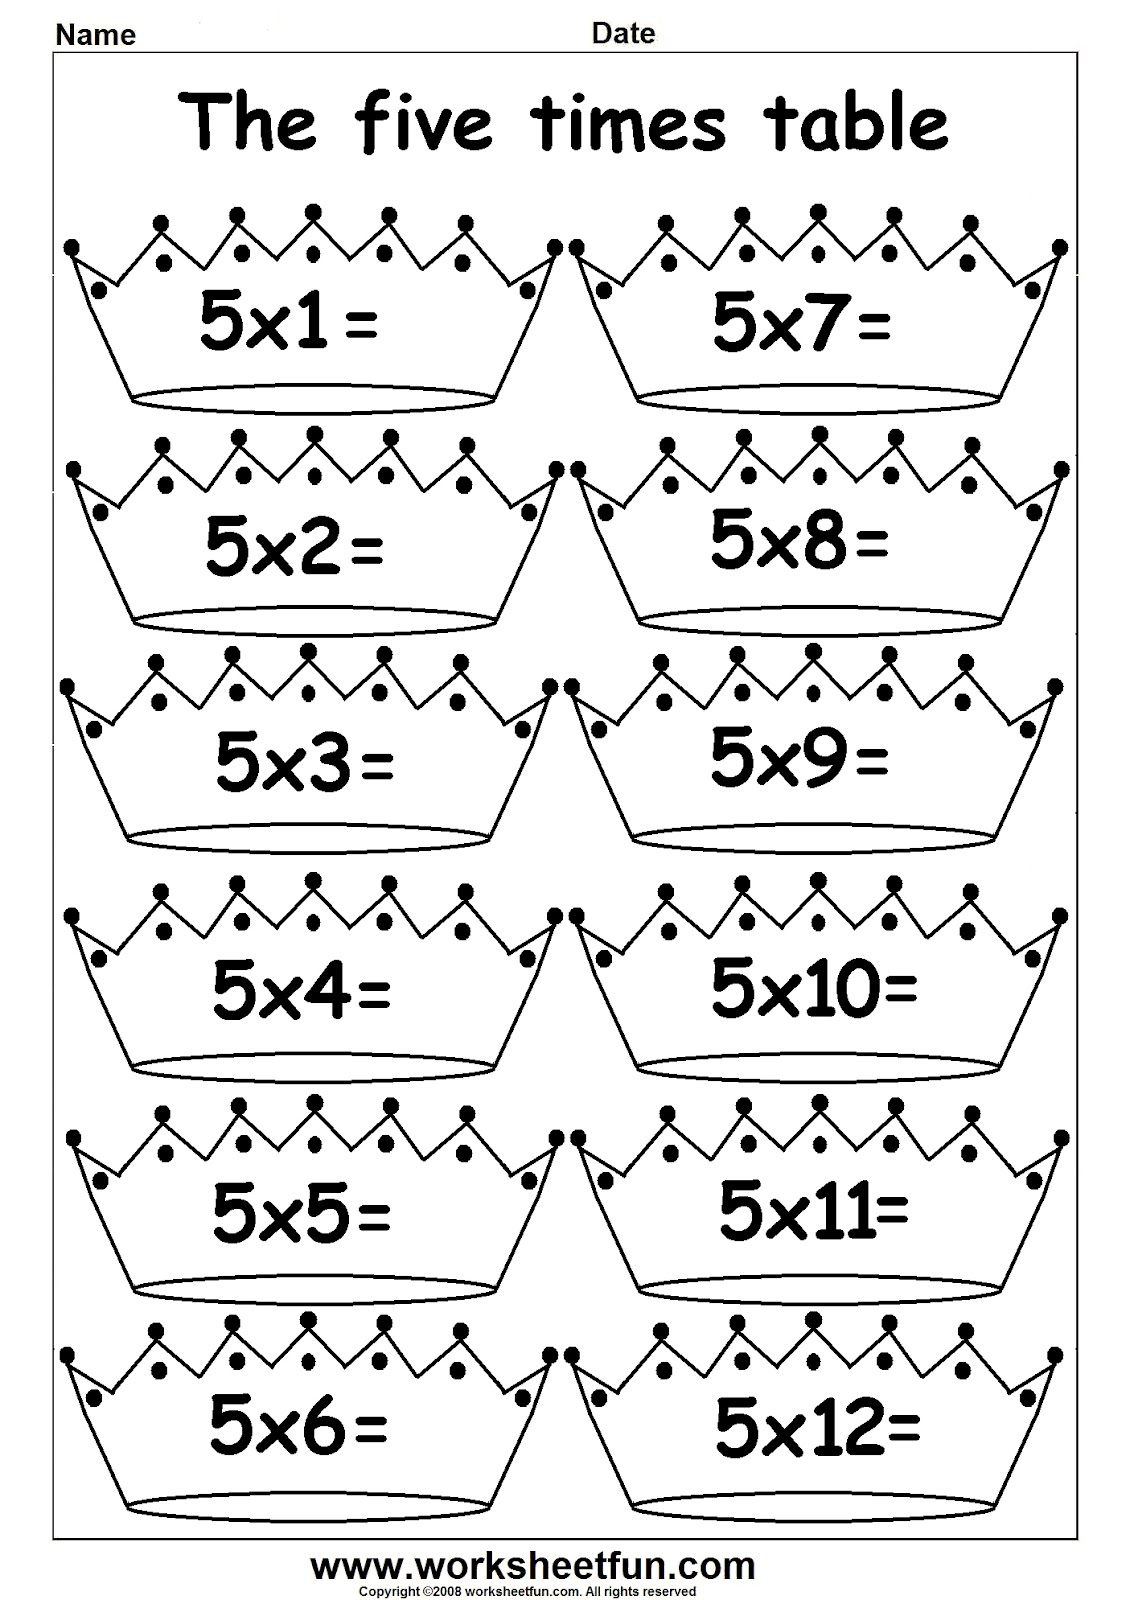 Arab Unity School | Grade 1 C | Blog: Maths - Multiply by 5 worksheets